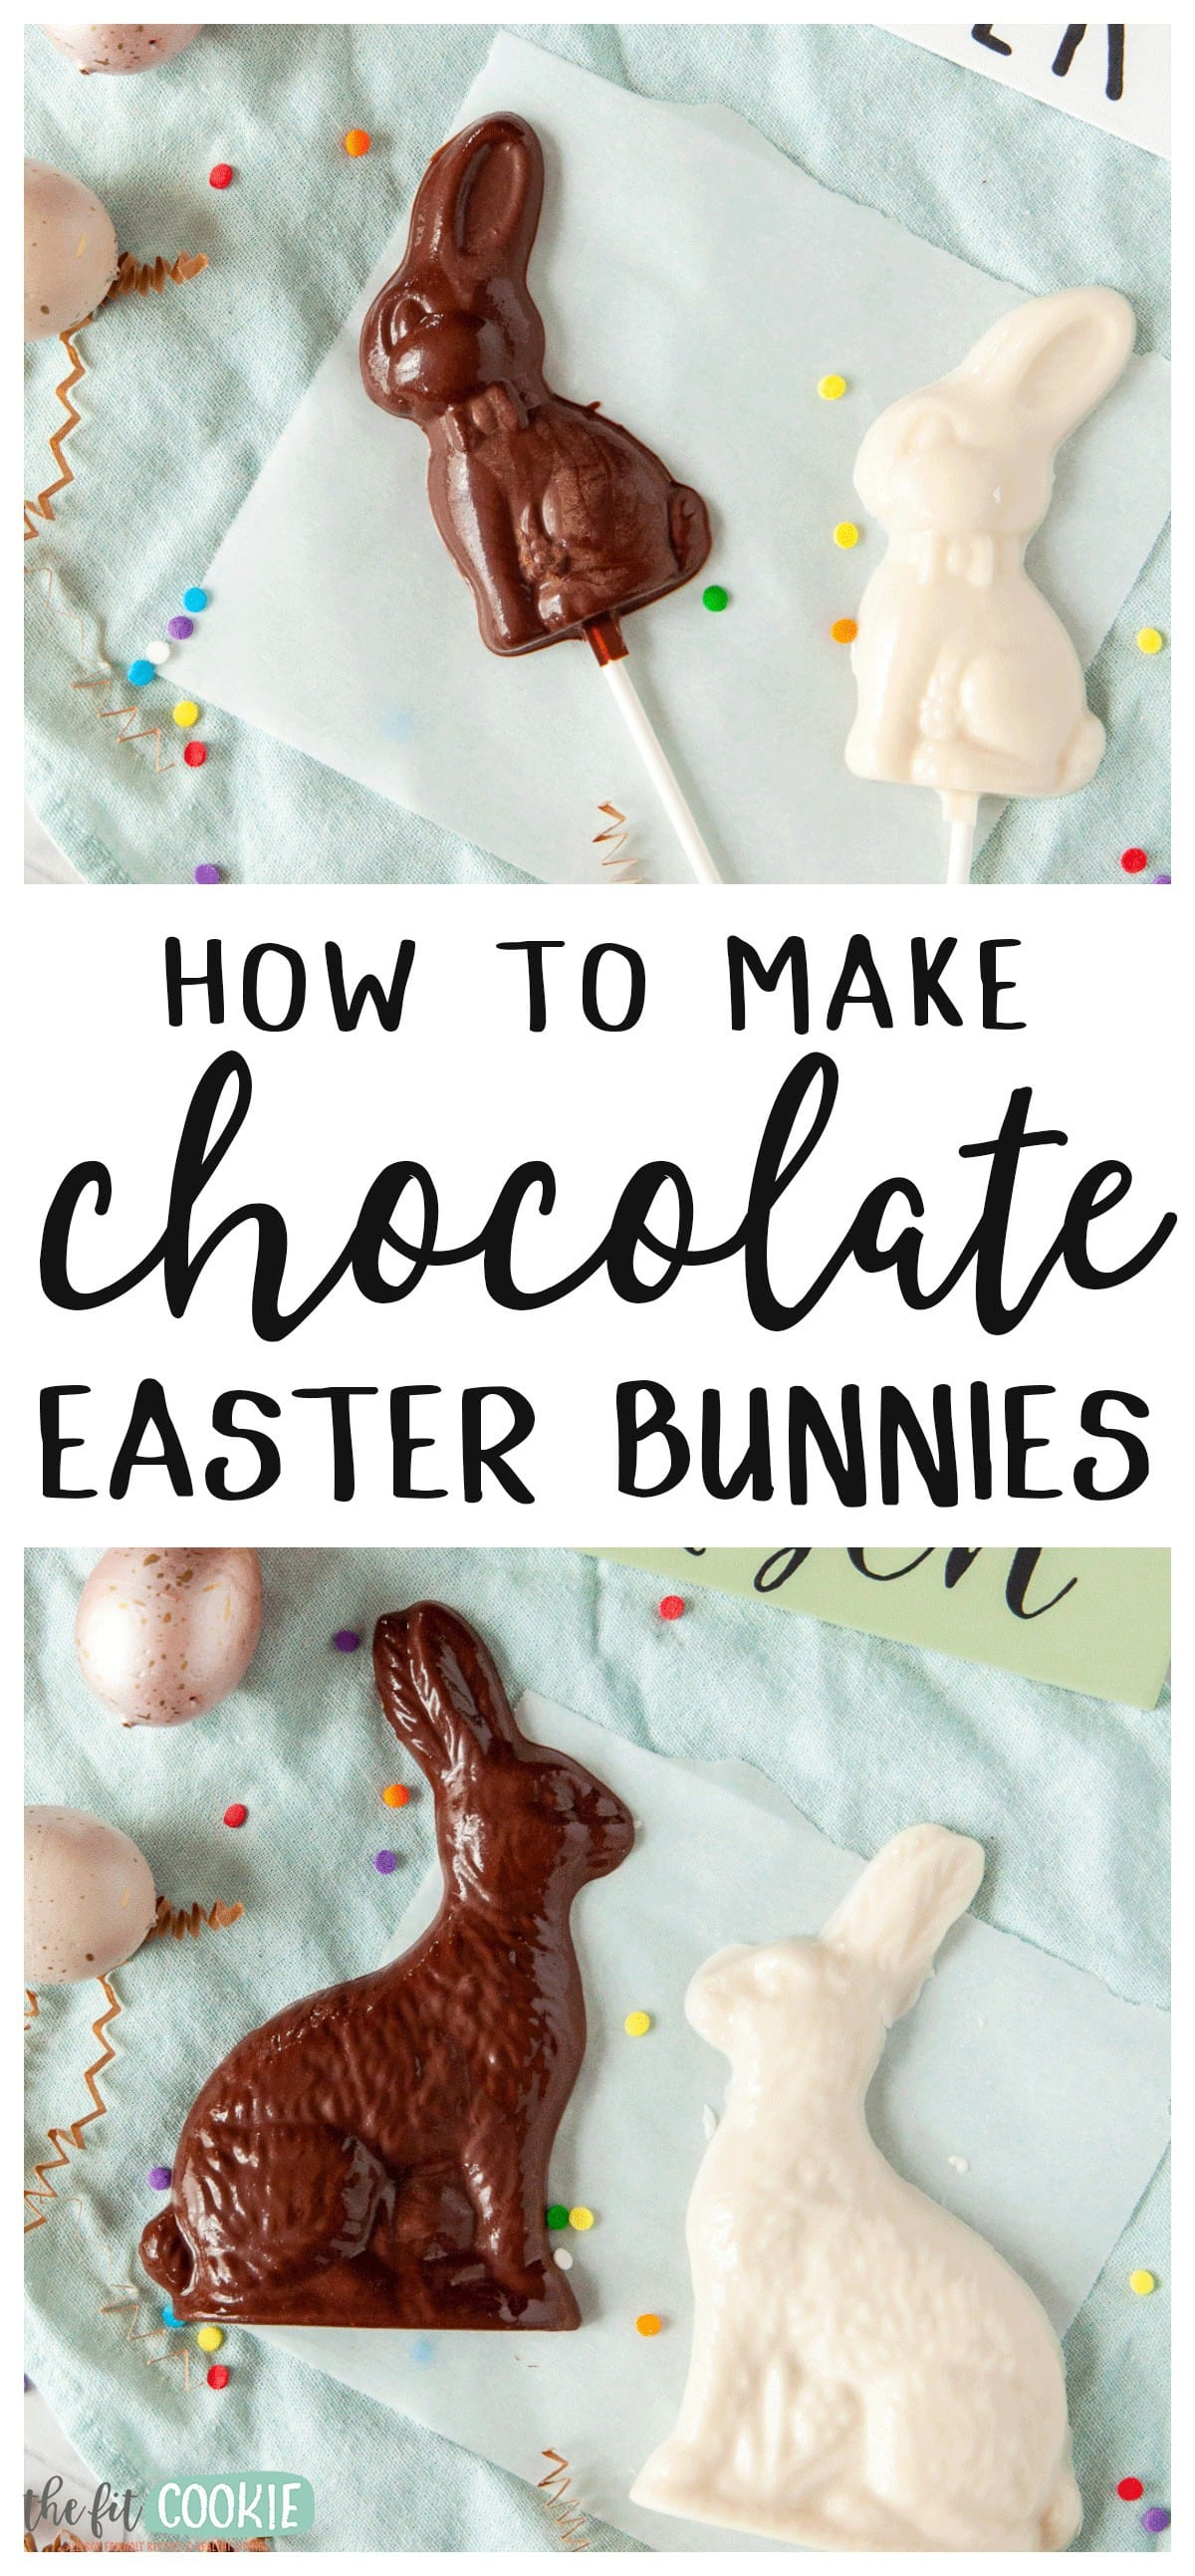 photo collage of homemade chocolate easter bunnies